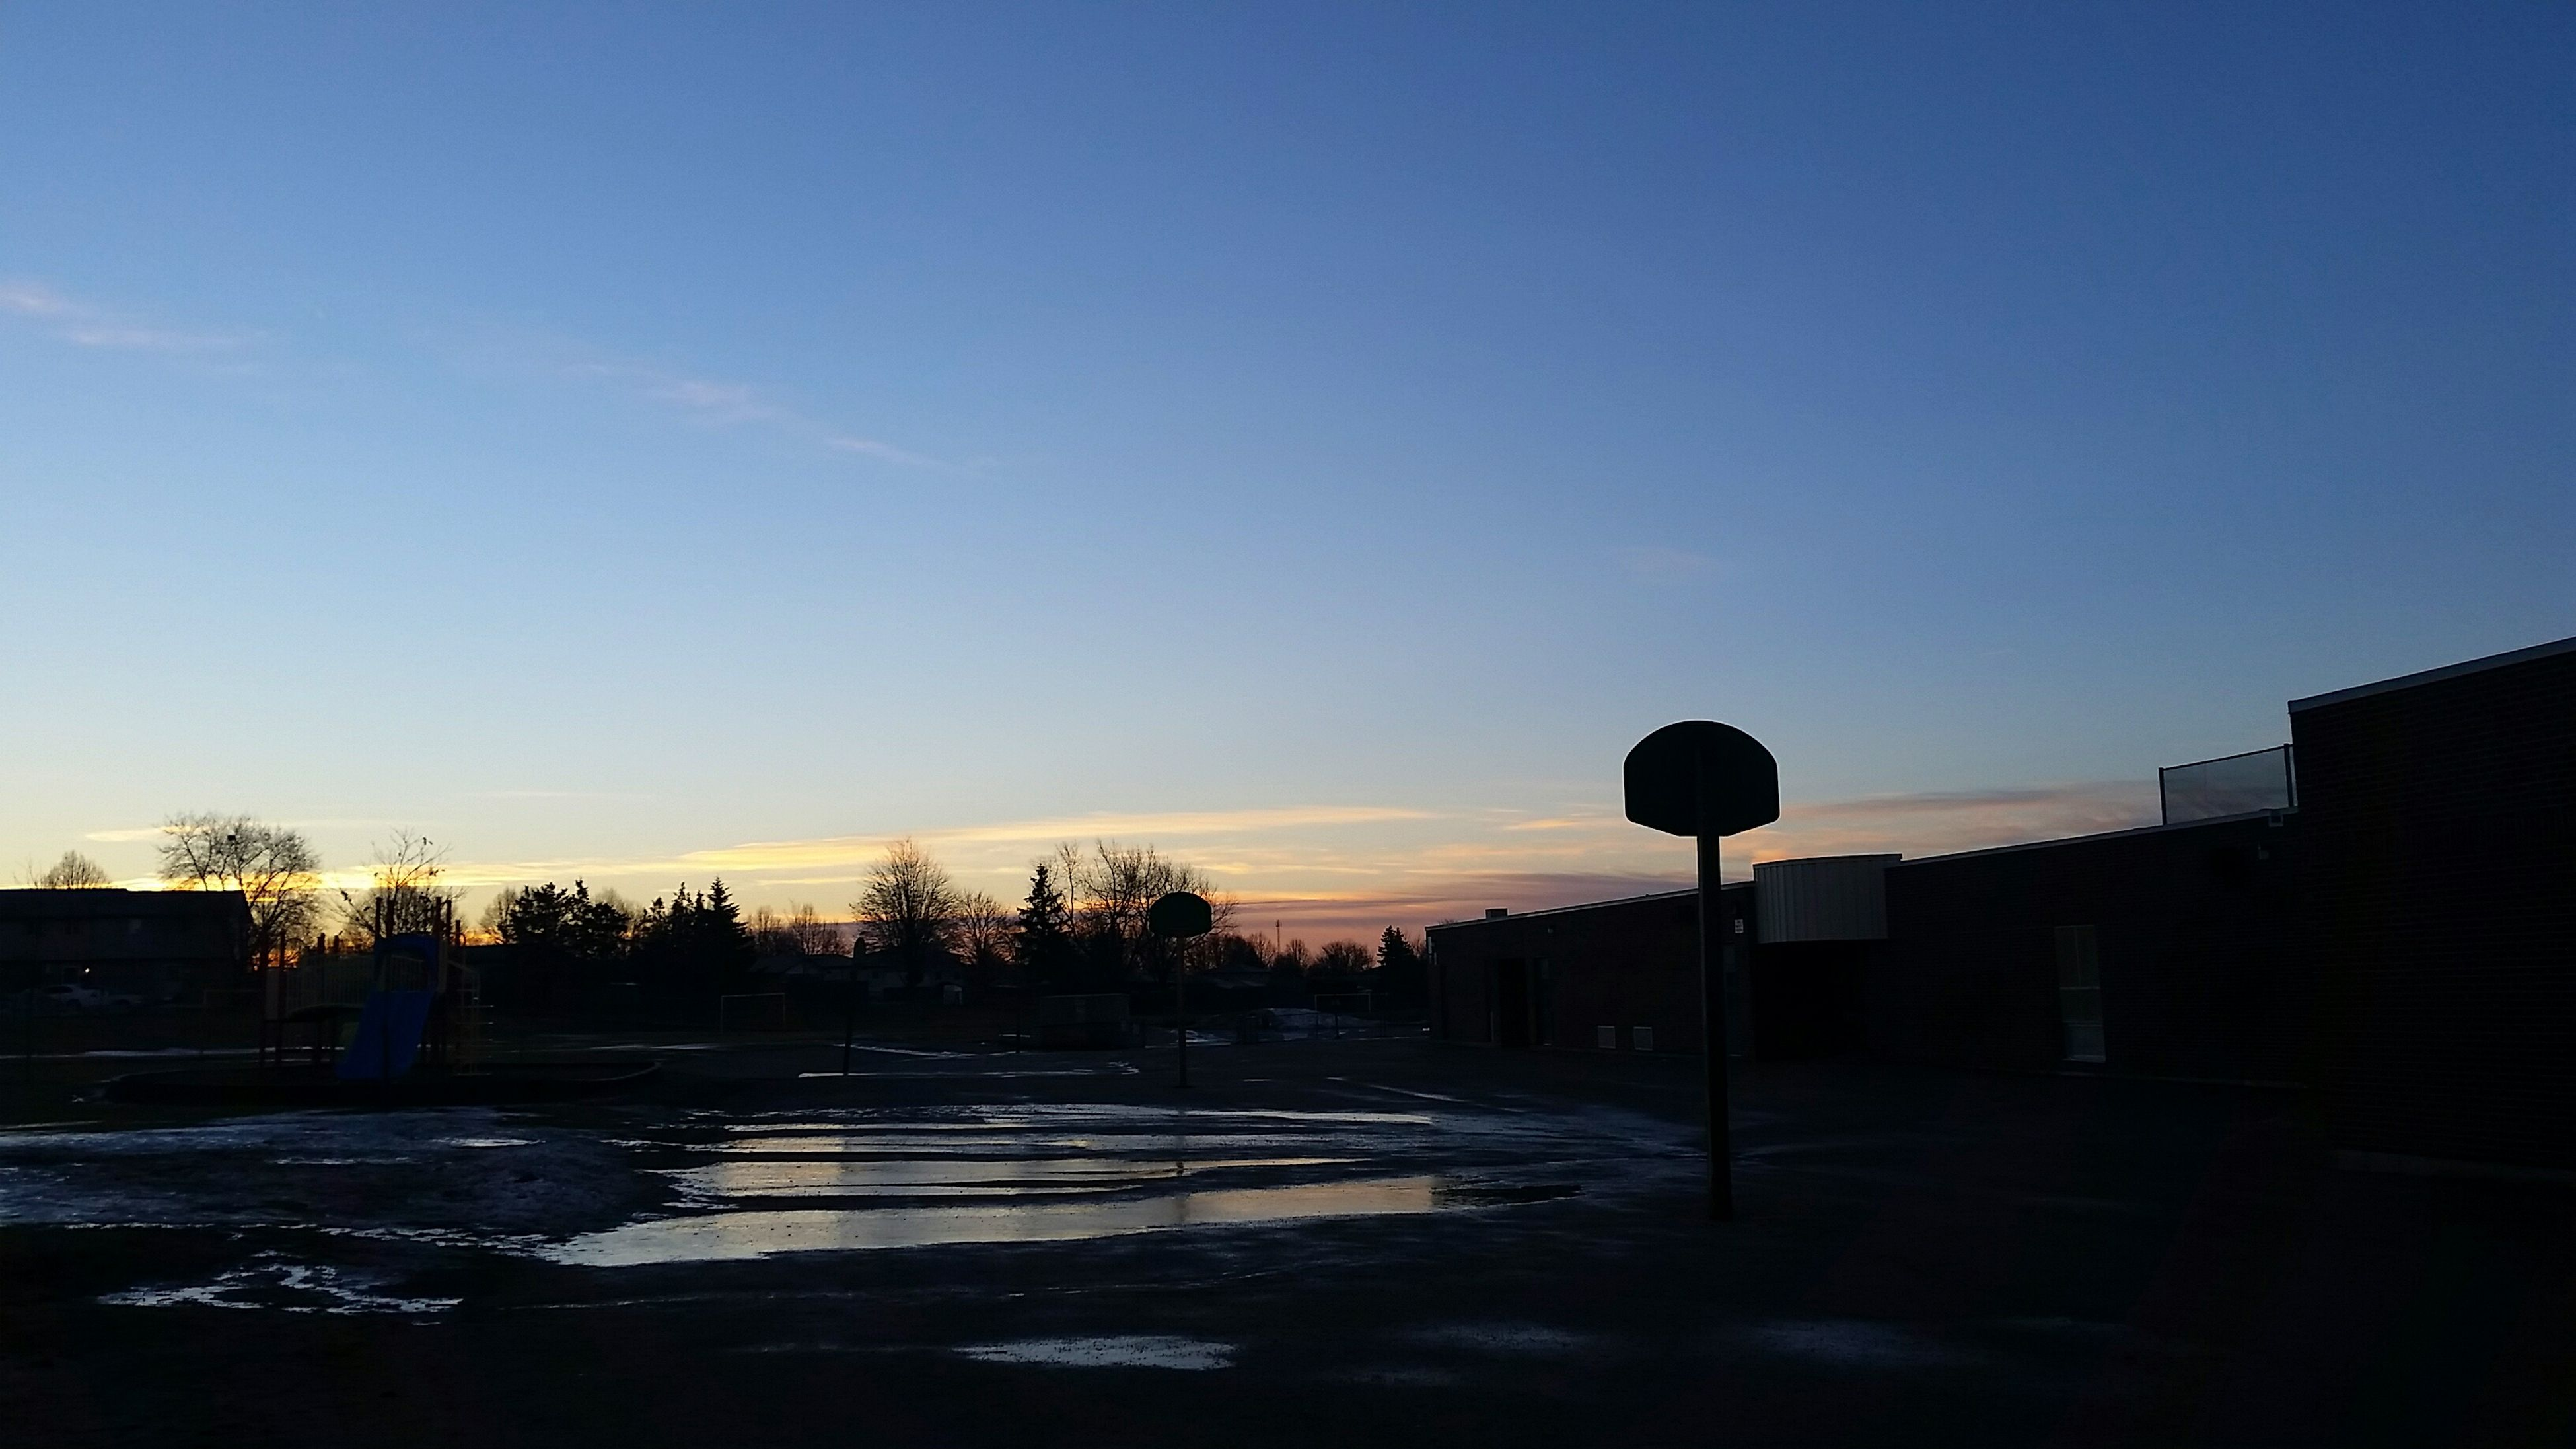 clear sky, copy space, sunset, blue, building exterior, built structure, sky, silhouette, architecture, tree, street light, tranquility, tranquil scene, outdoors, road, dusk, nature, scenics, no people, beauty in nature